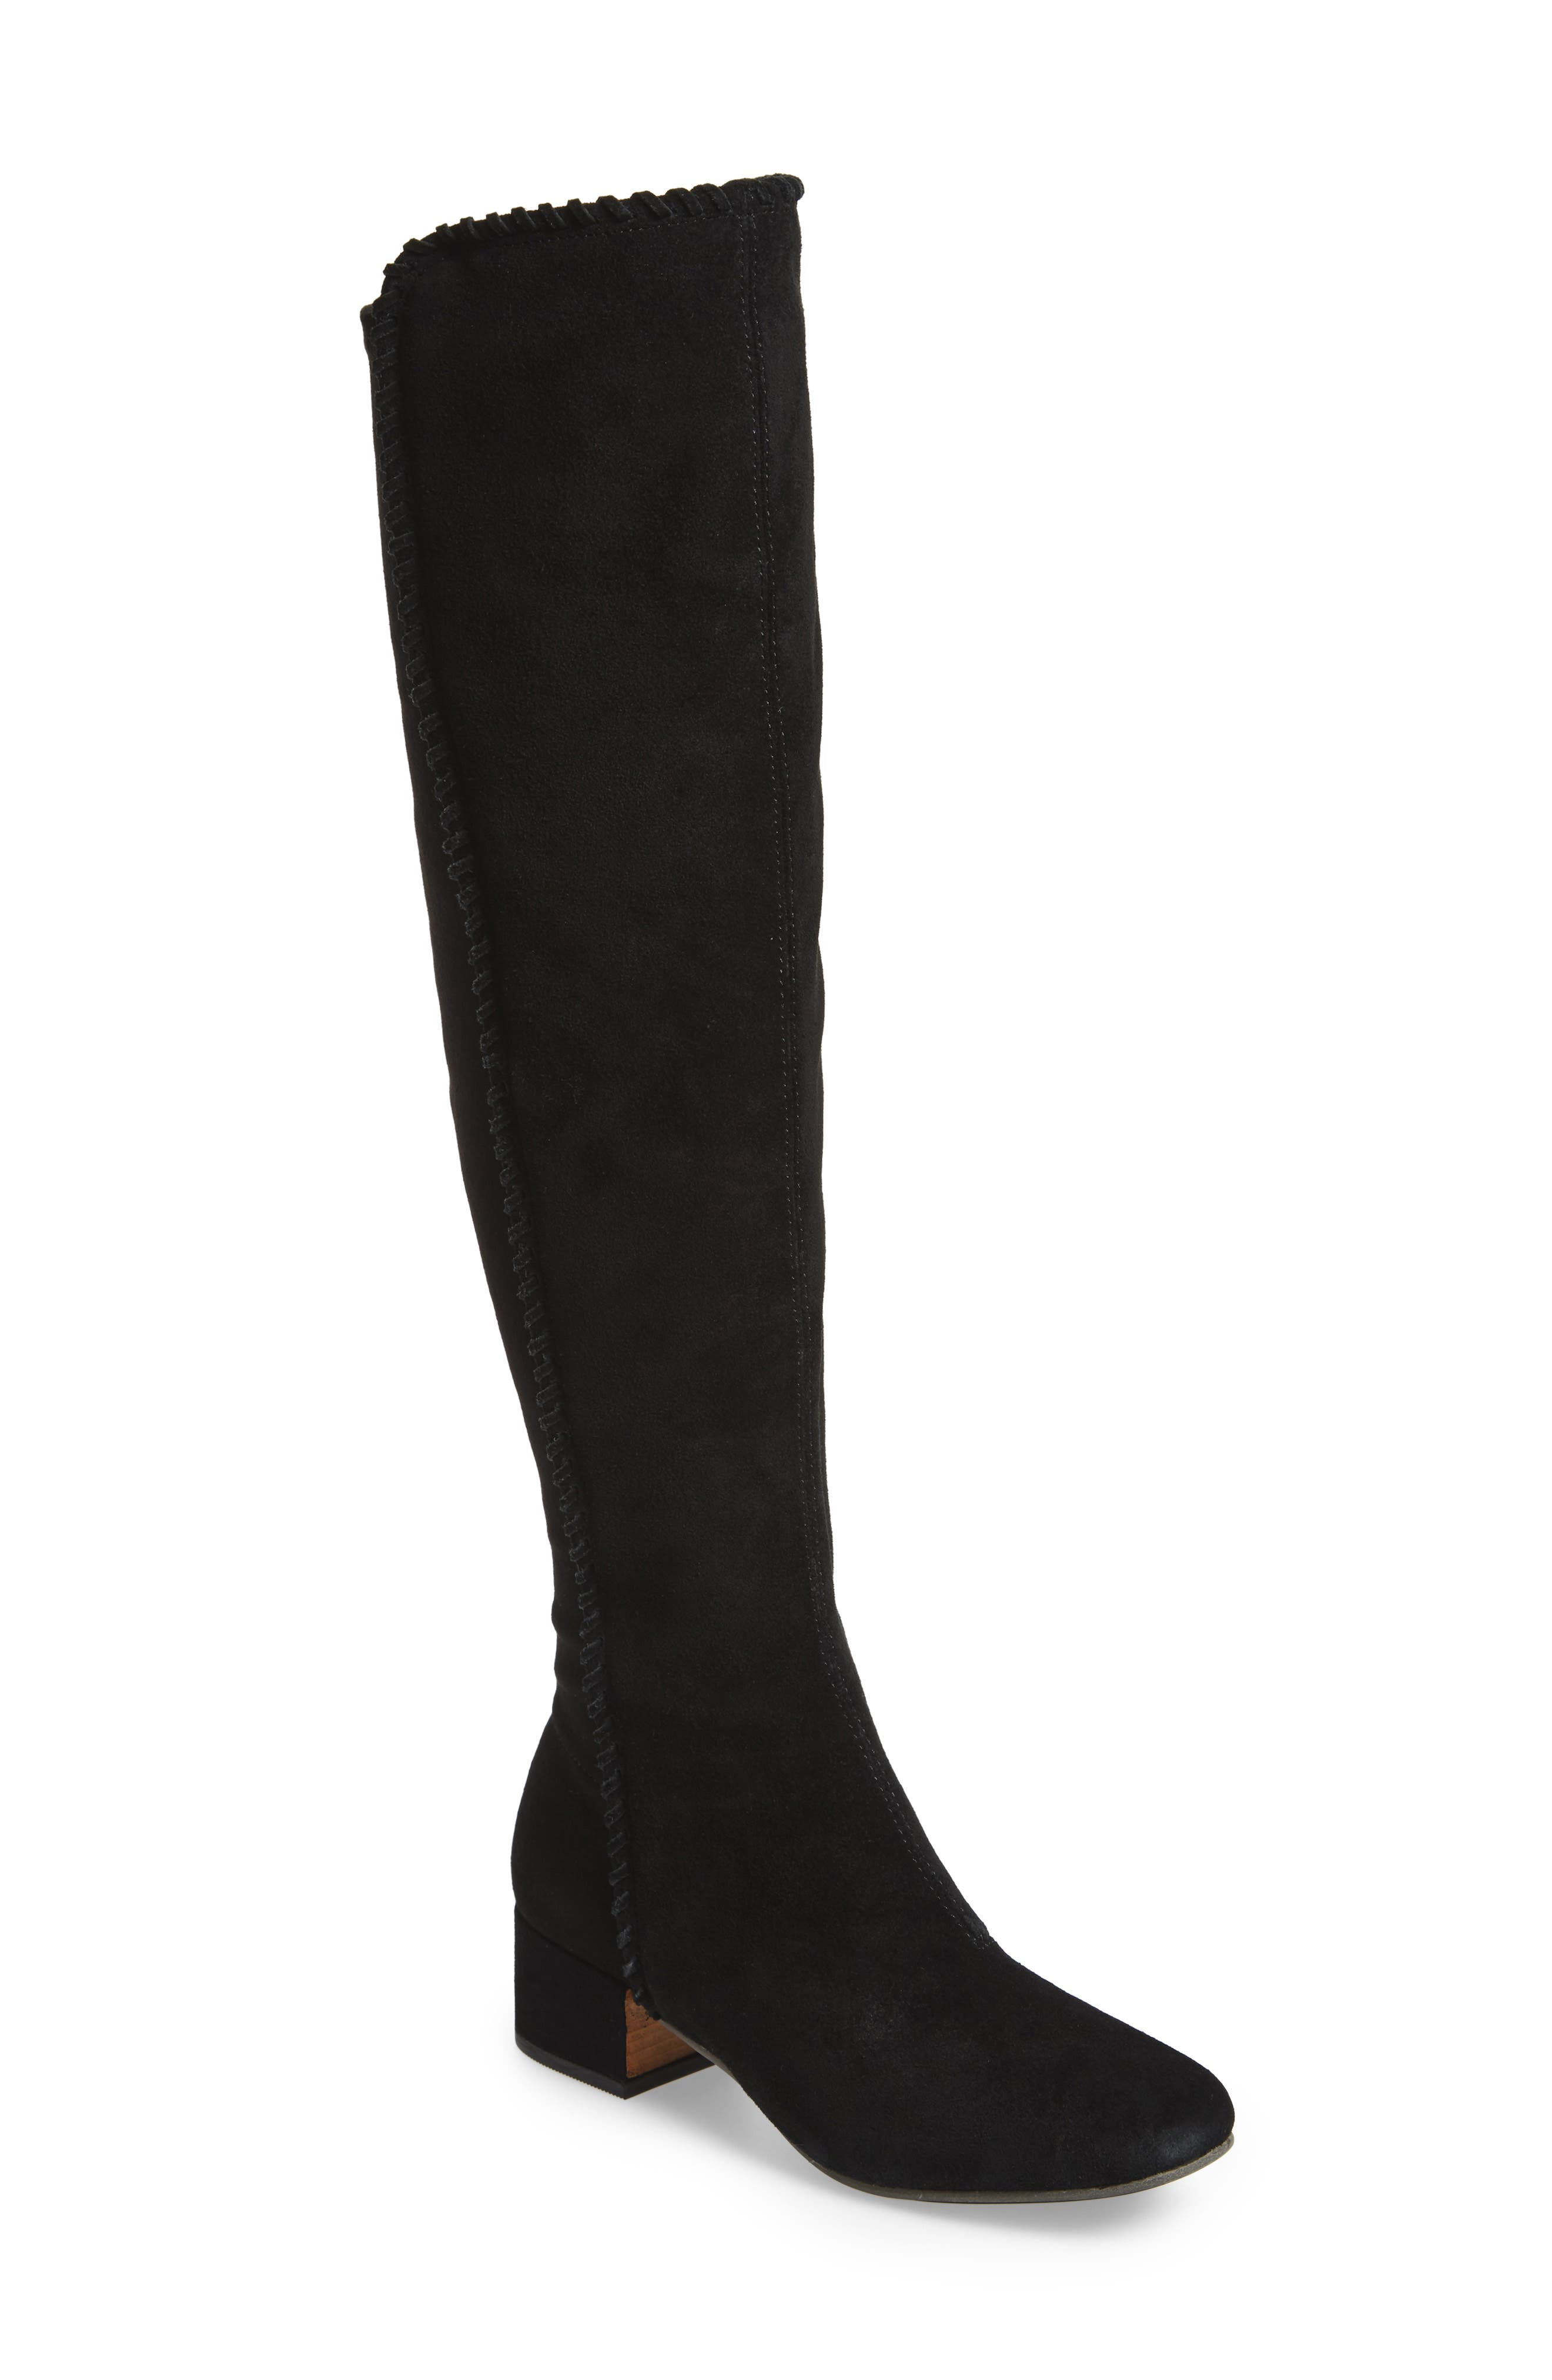 Emery Over the Knee Boot,                             Main thumbnail 1, color,                             001